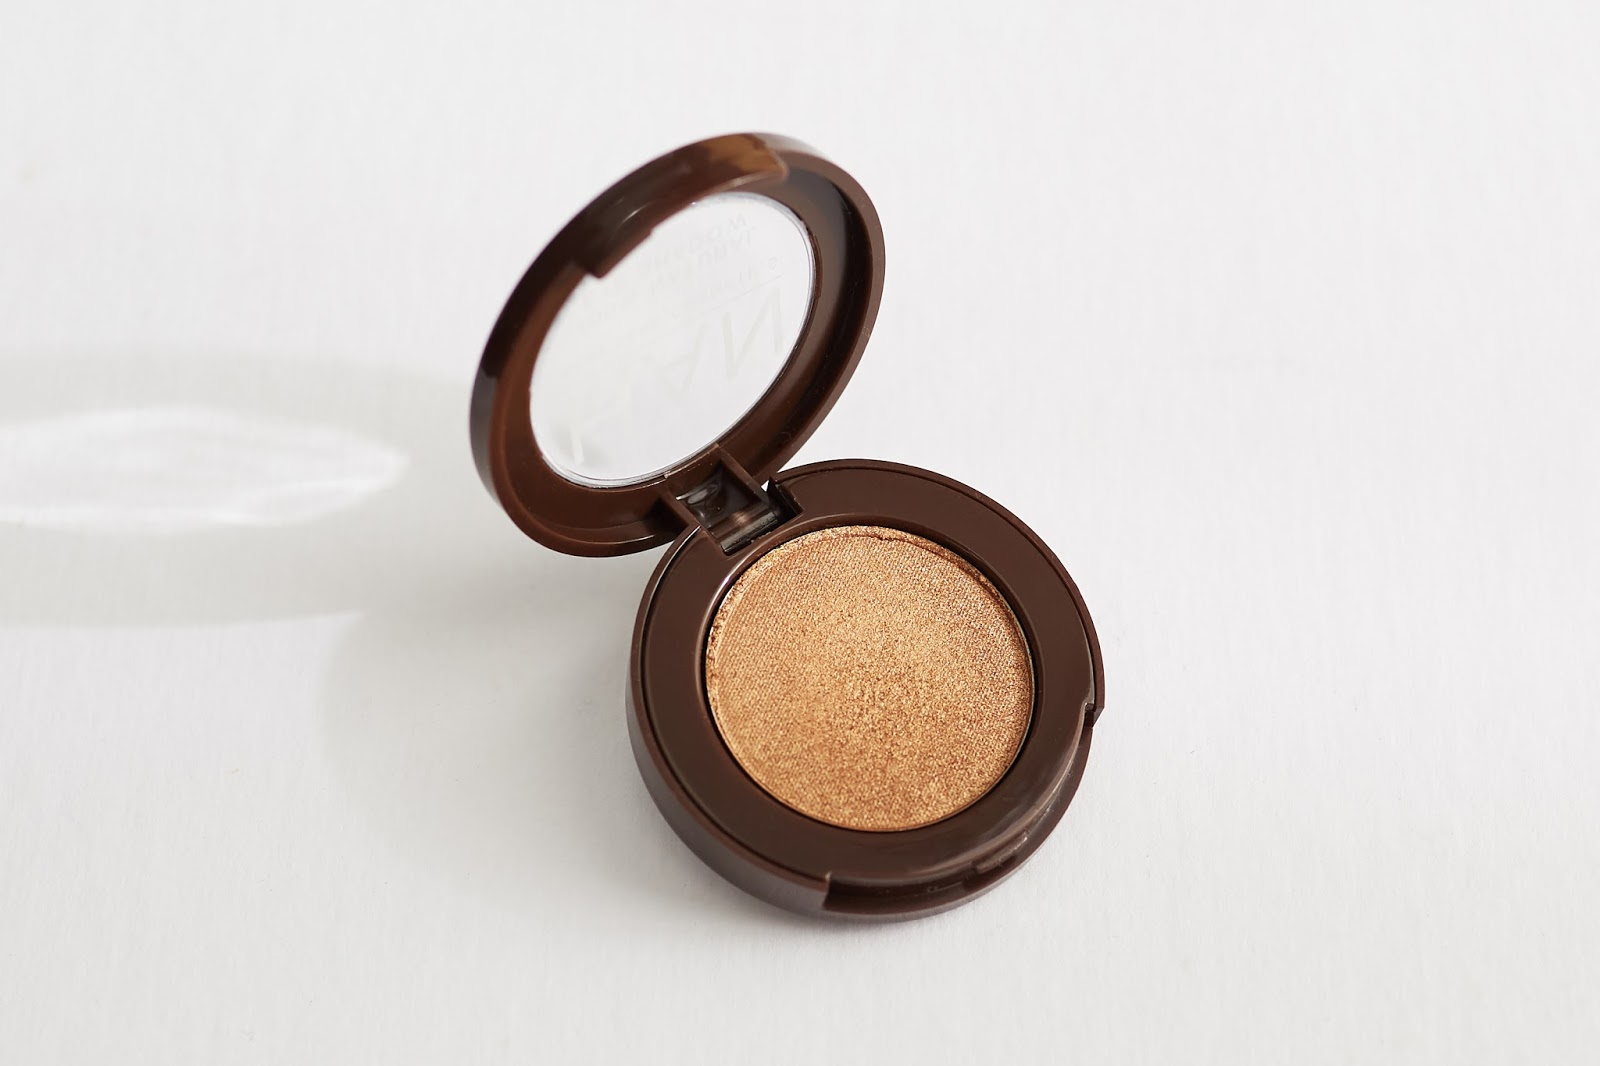 HAN Skin Care Cosmetics Eyeshadow in Golden Glow natural makeup hellolindasau